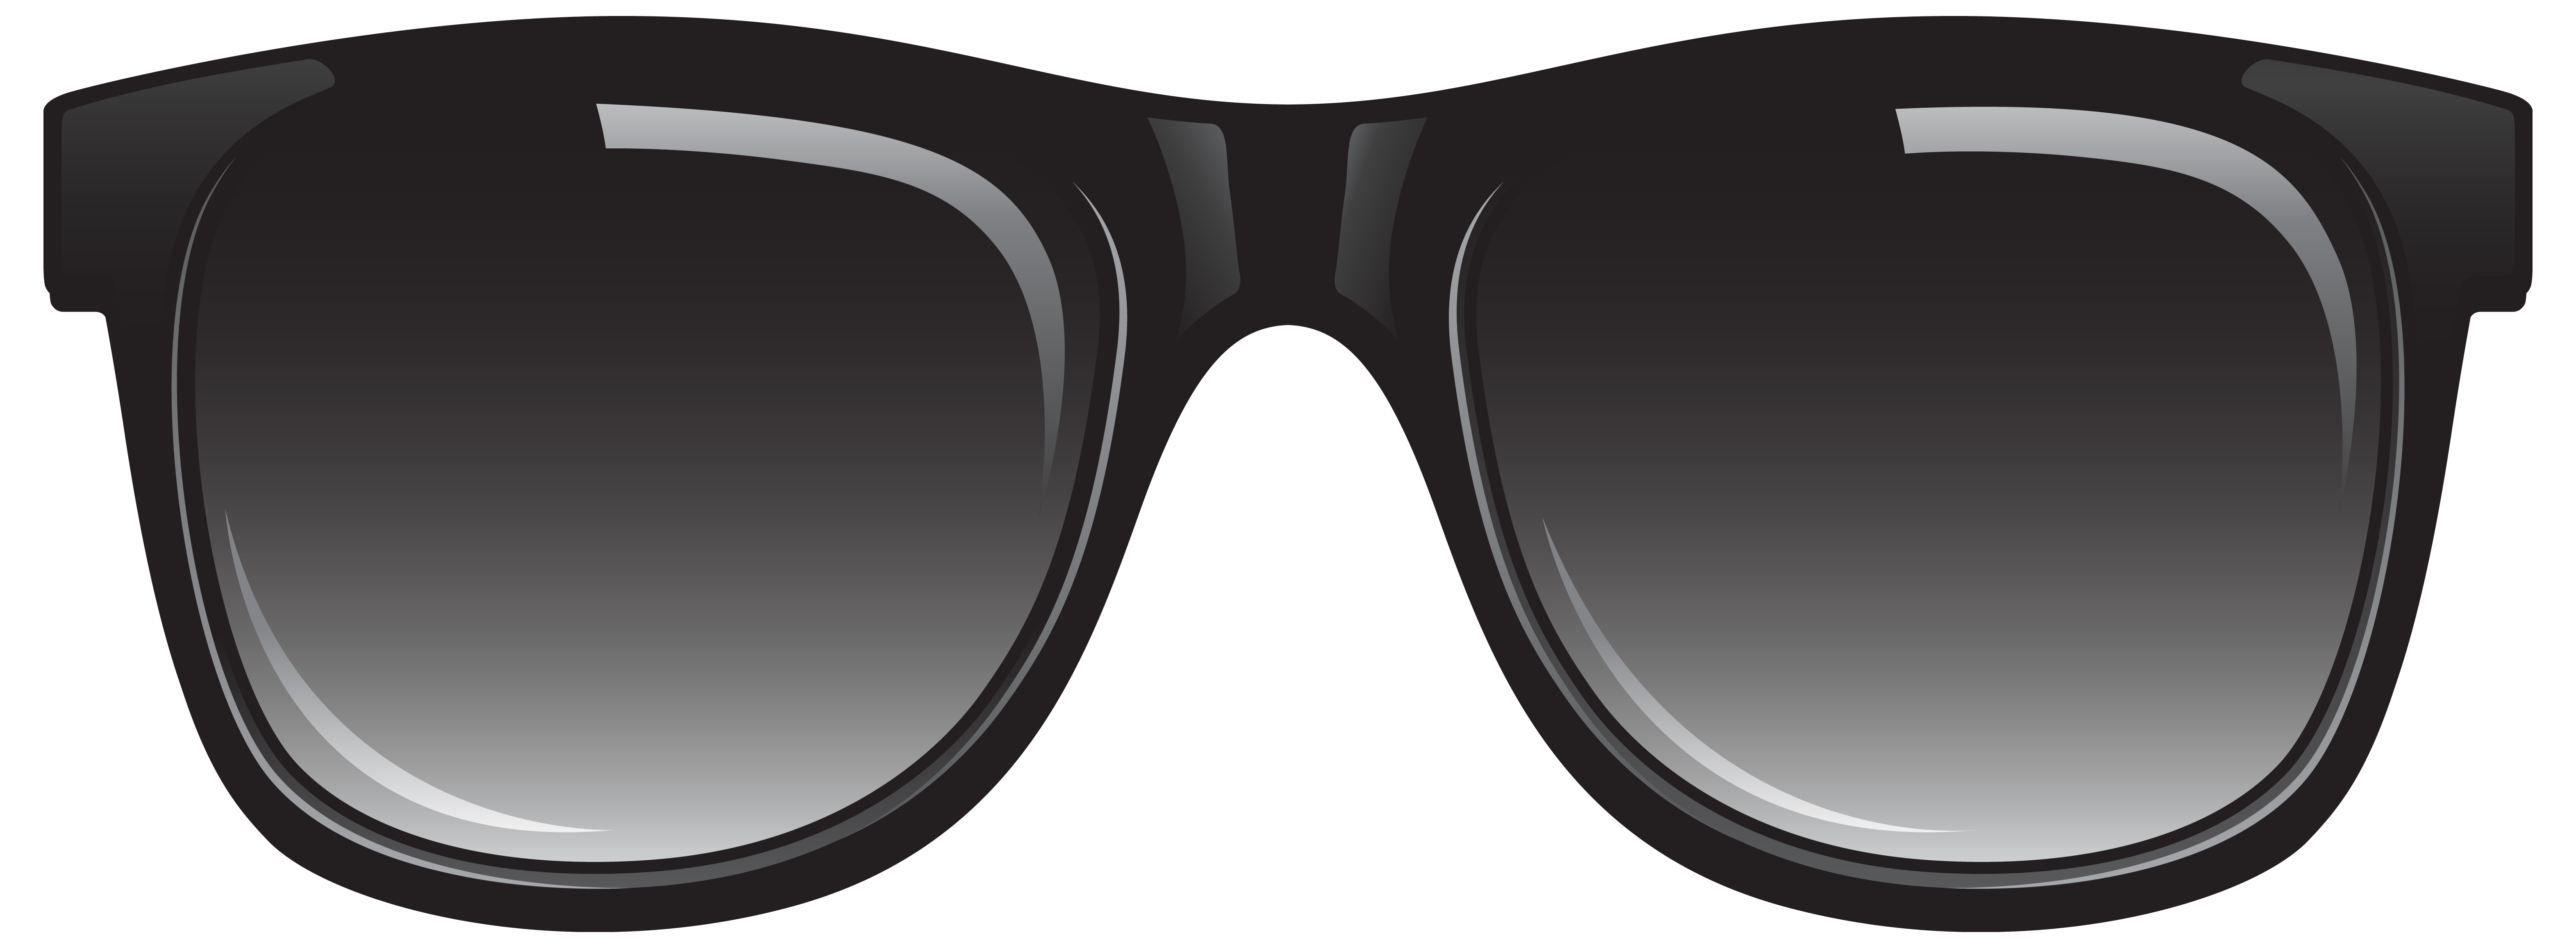 Sunglasses Frames PNG Image - Sunglasses HD PNG